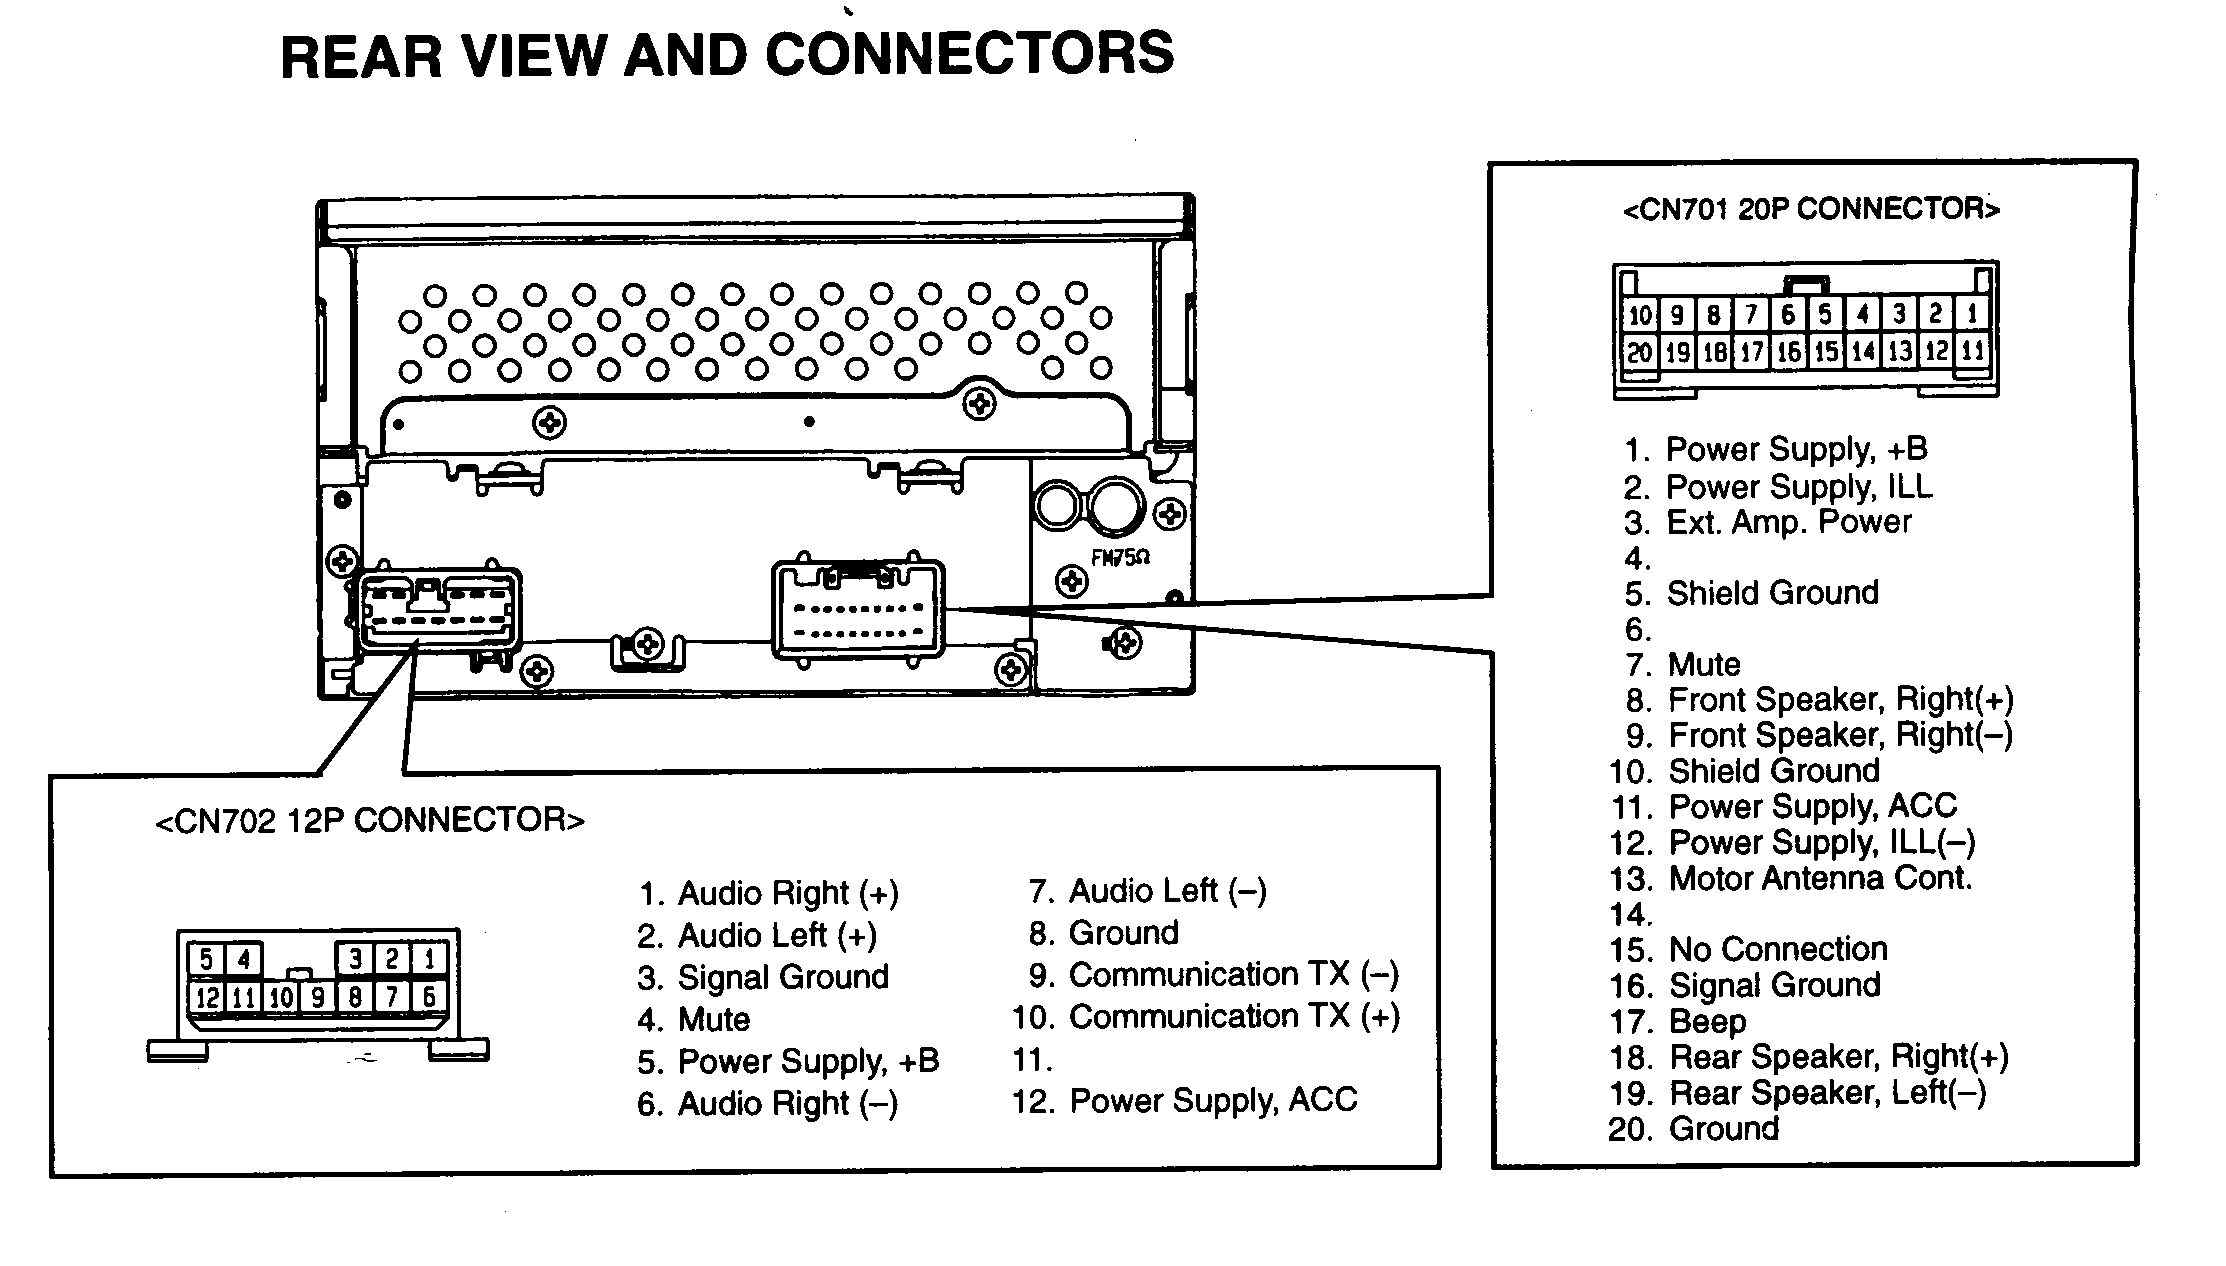 1996 Gmc Cd Radio Wiring Diagram Reinvent Your Schematic Transmission Sonoma 2 Engine Bose Car Stereo Diagrams Schematics Rh Caltech Ctp Com Automatic For 1997 Jimmy Brake Switch